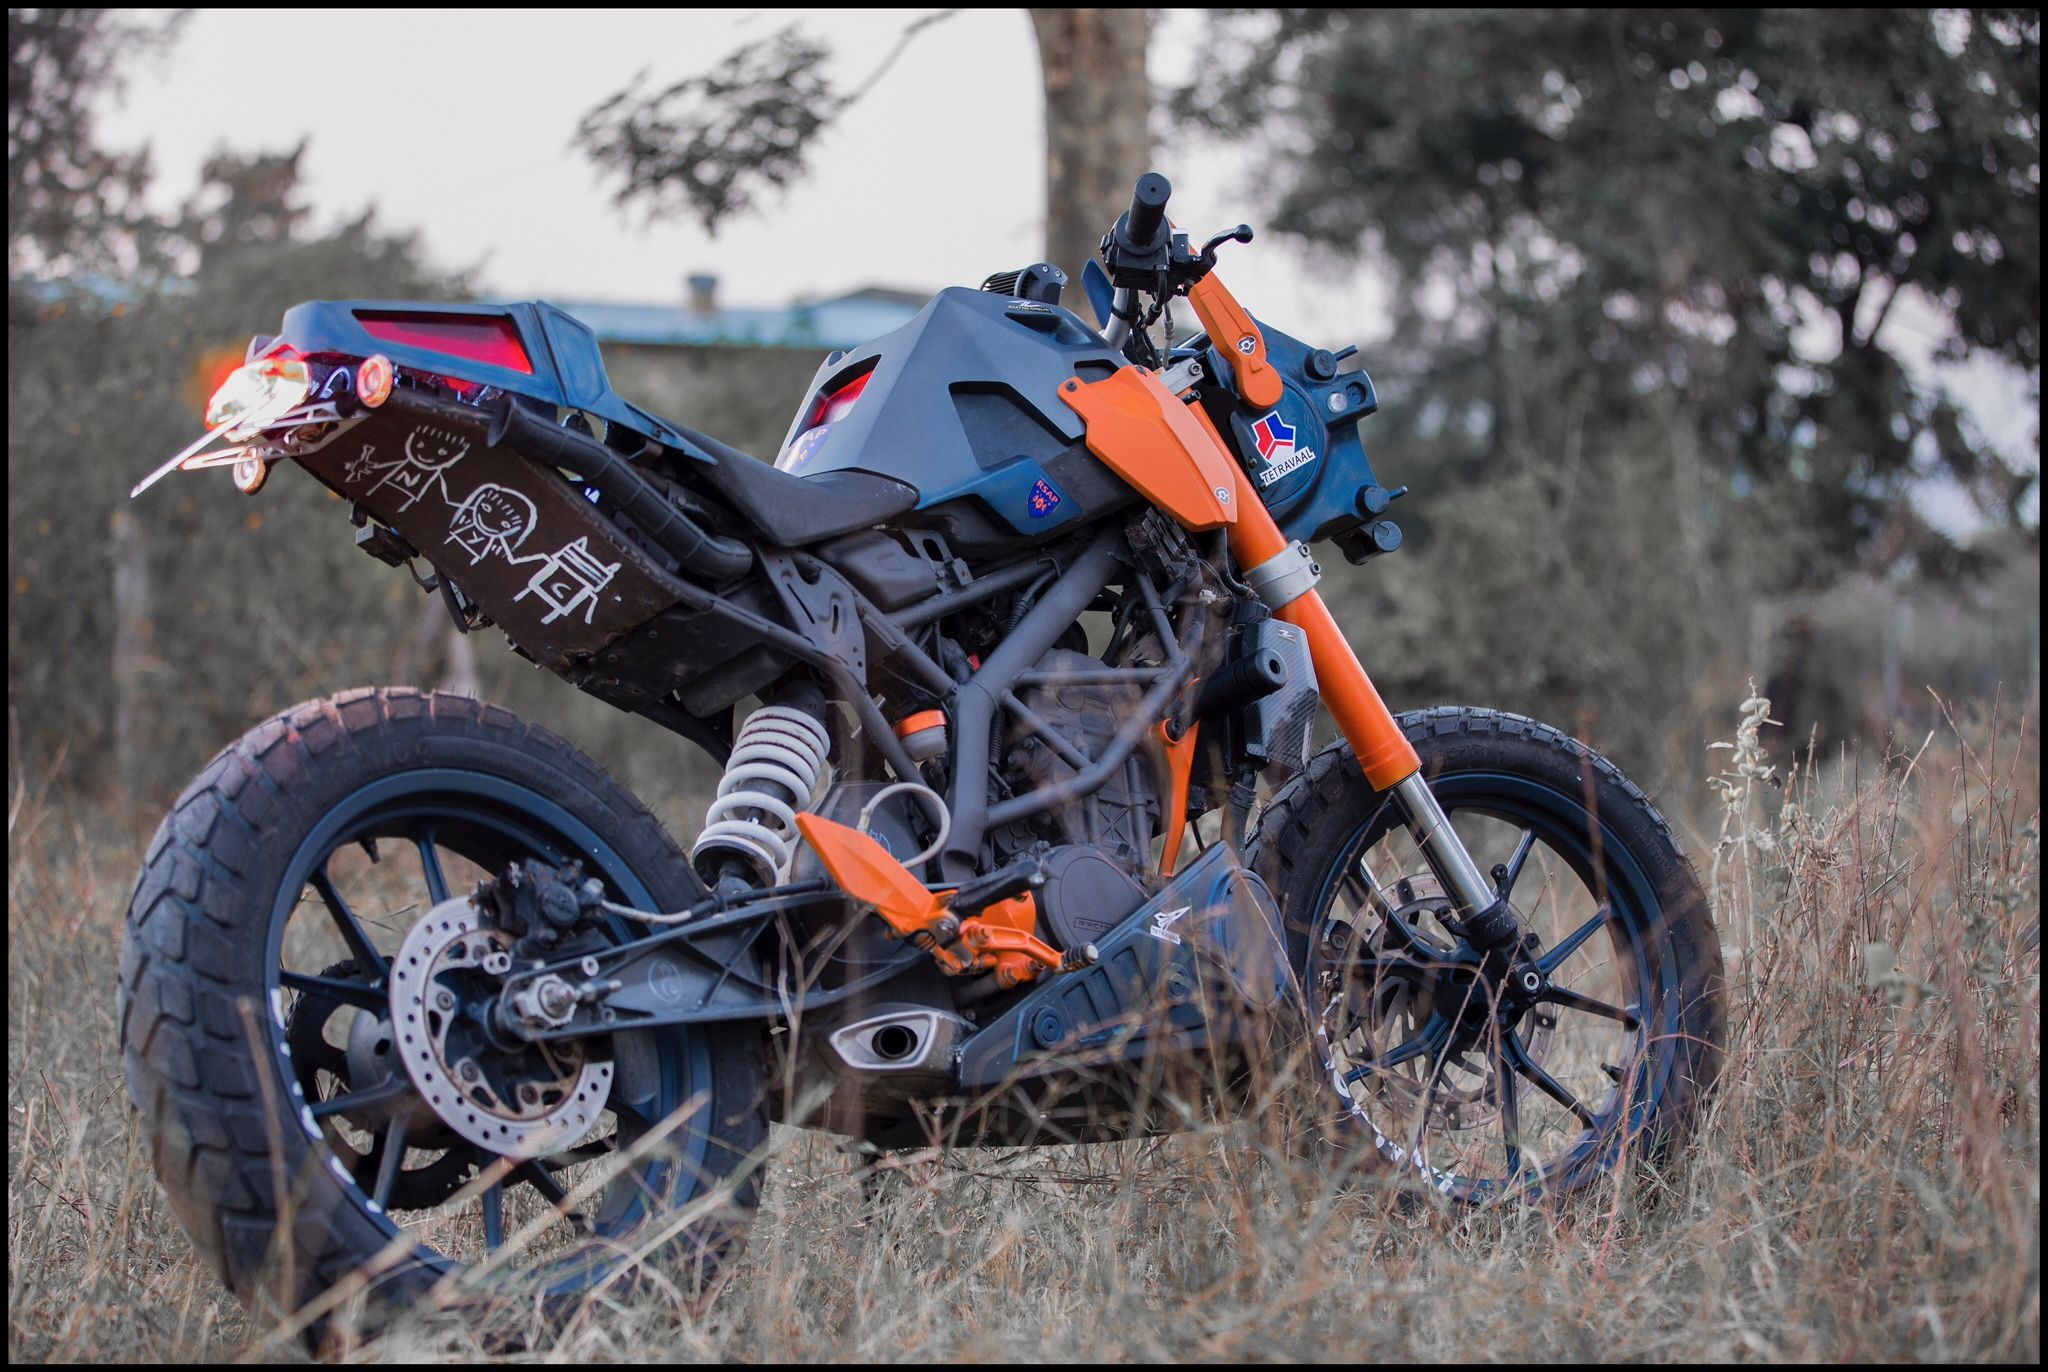 Ktm Duke 200 Custom Chappie Derestricted Ktm Duke Ktm Duke